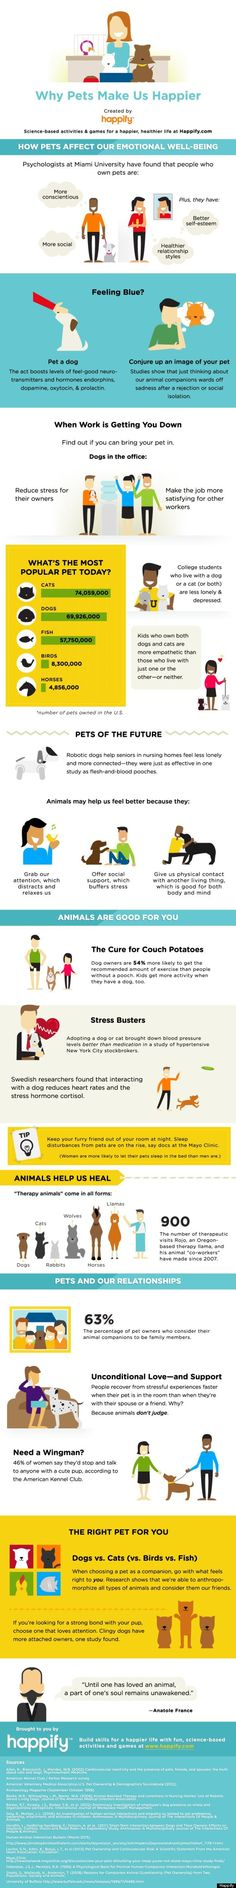 Yes! Pets make us happier in many ways #pets